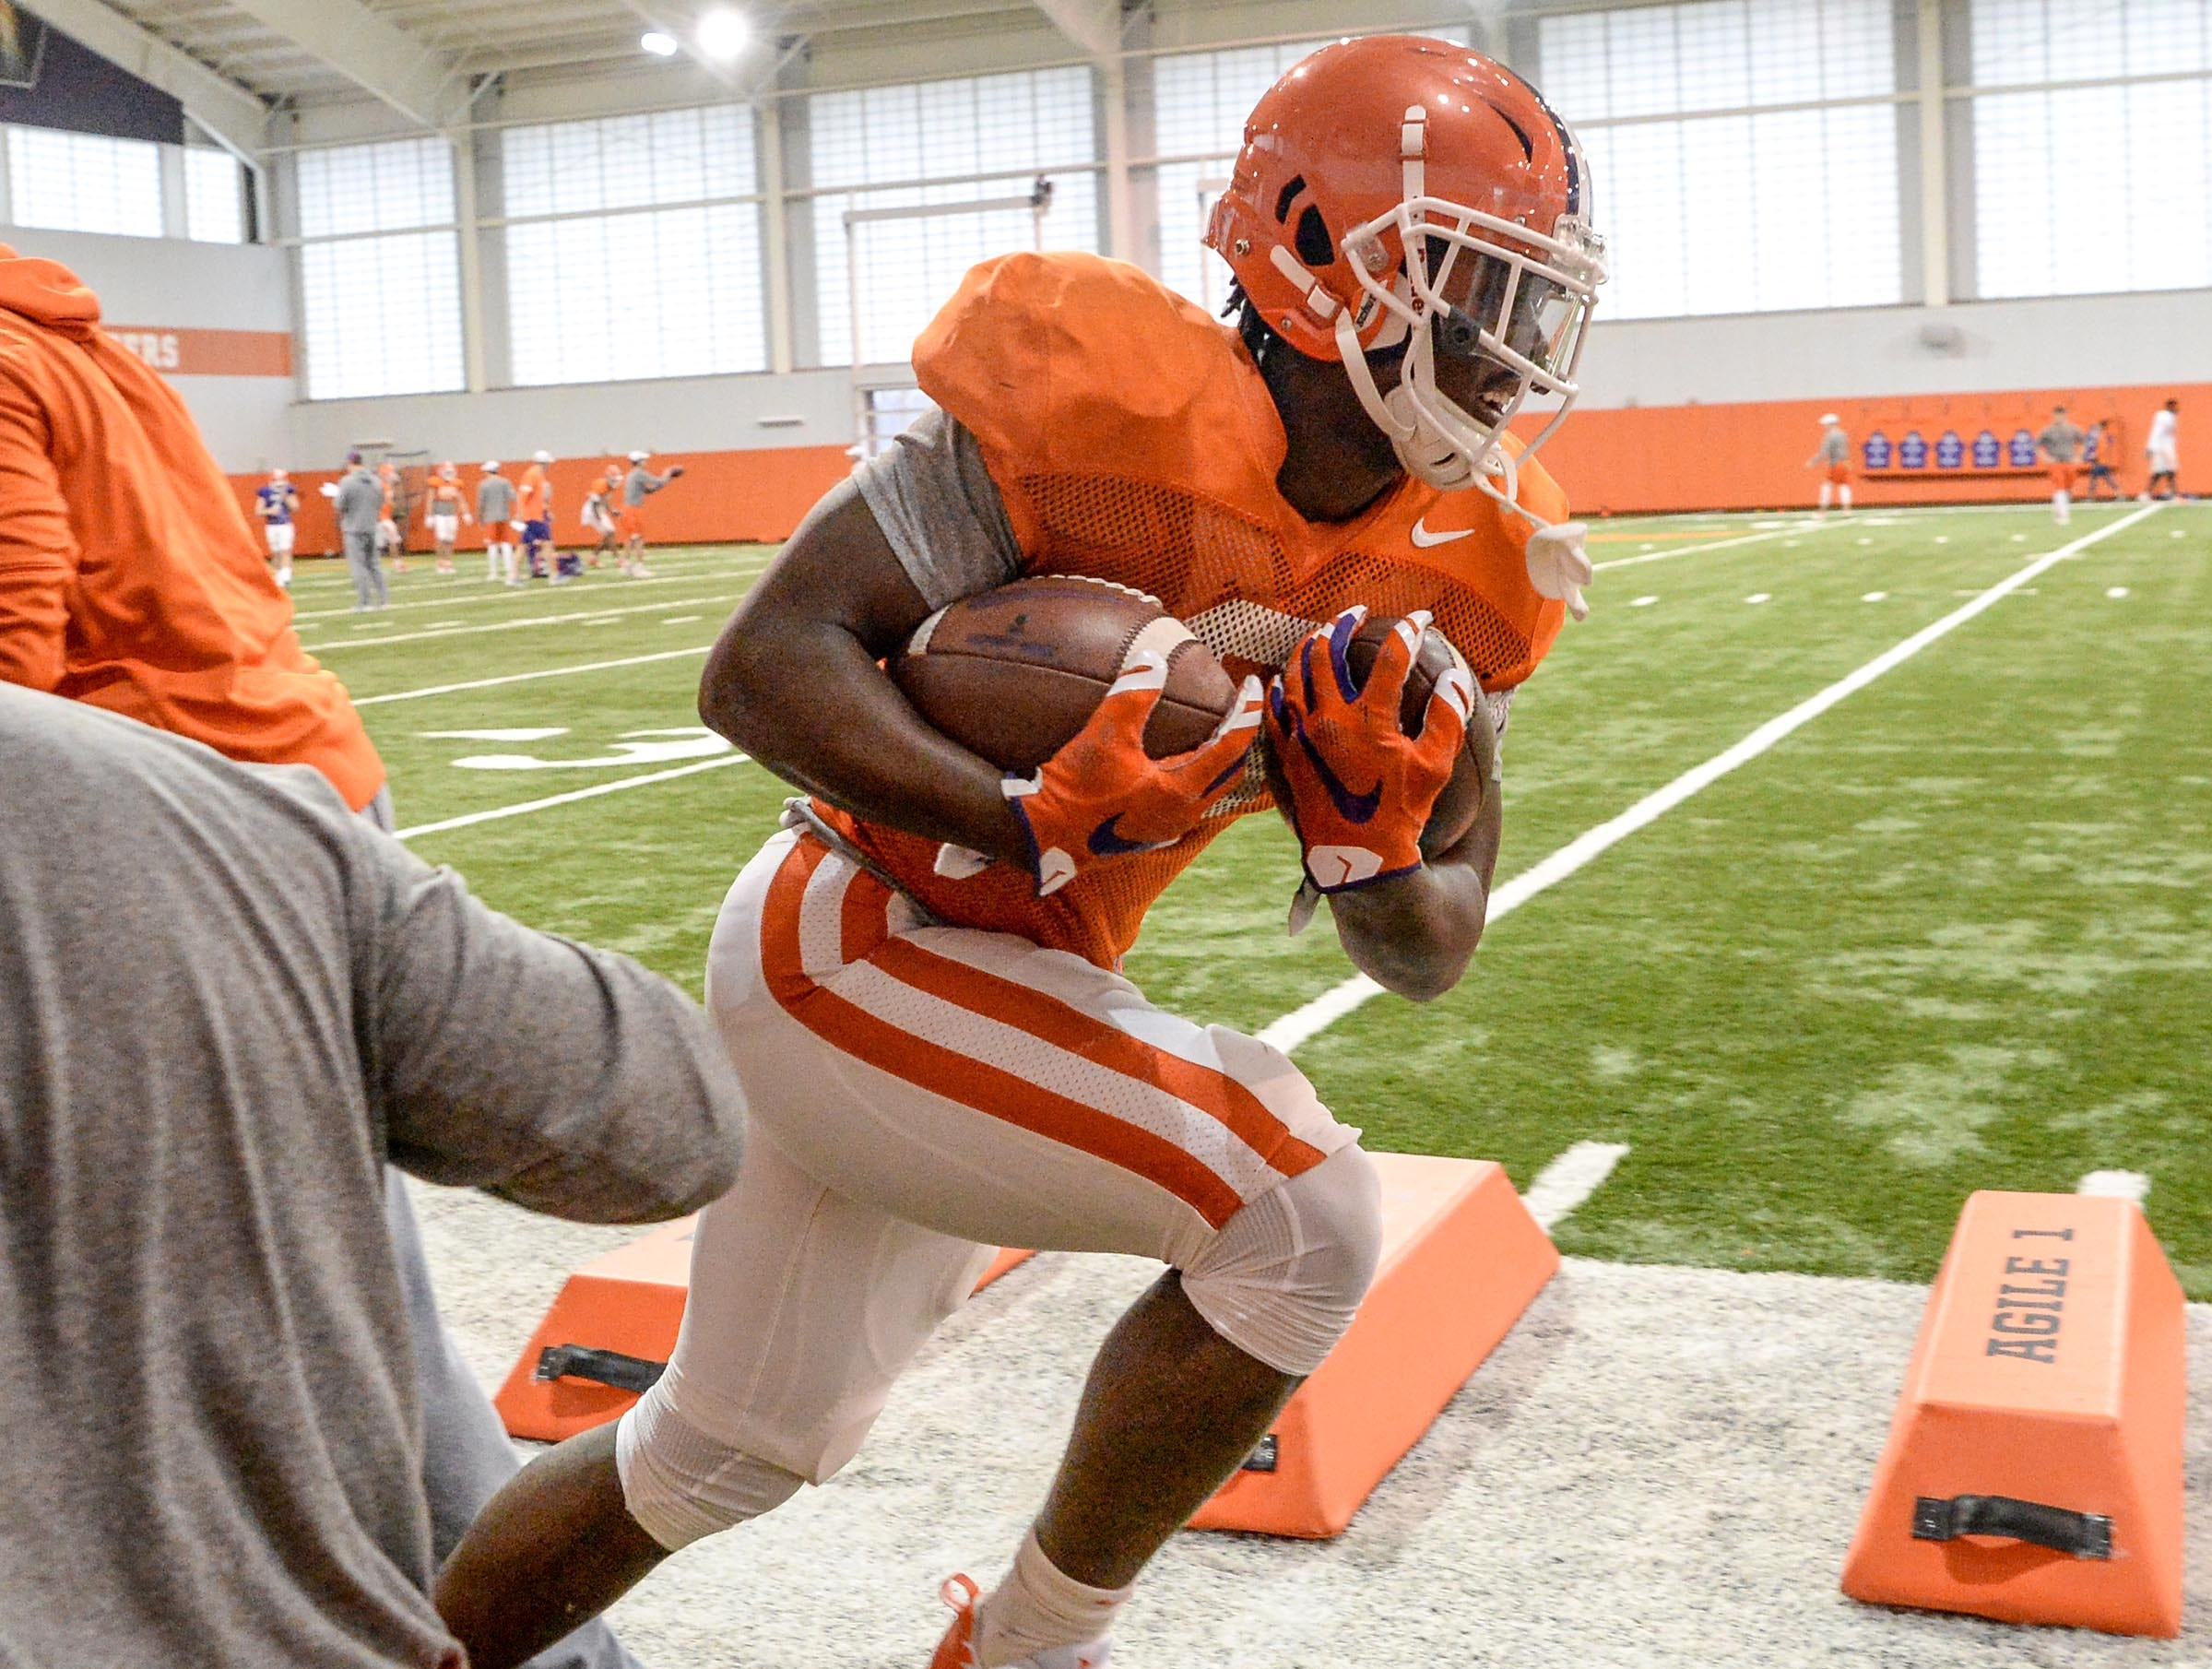 Clemson running back Travis Etienne (9) runs a drill with two footballs during practice for the Cotton Bowl at the Poe Indoor Facility in Clemson Friday, December 14, 2018.